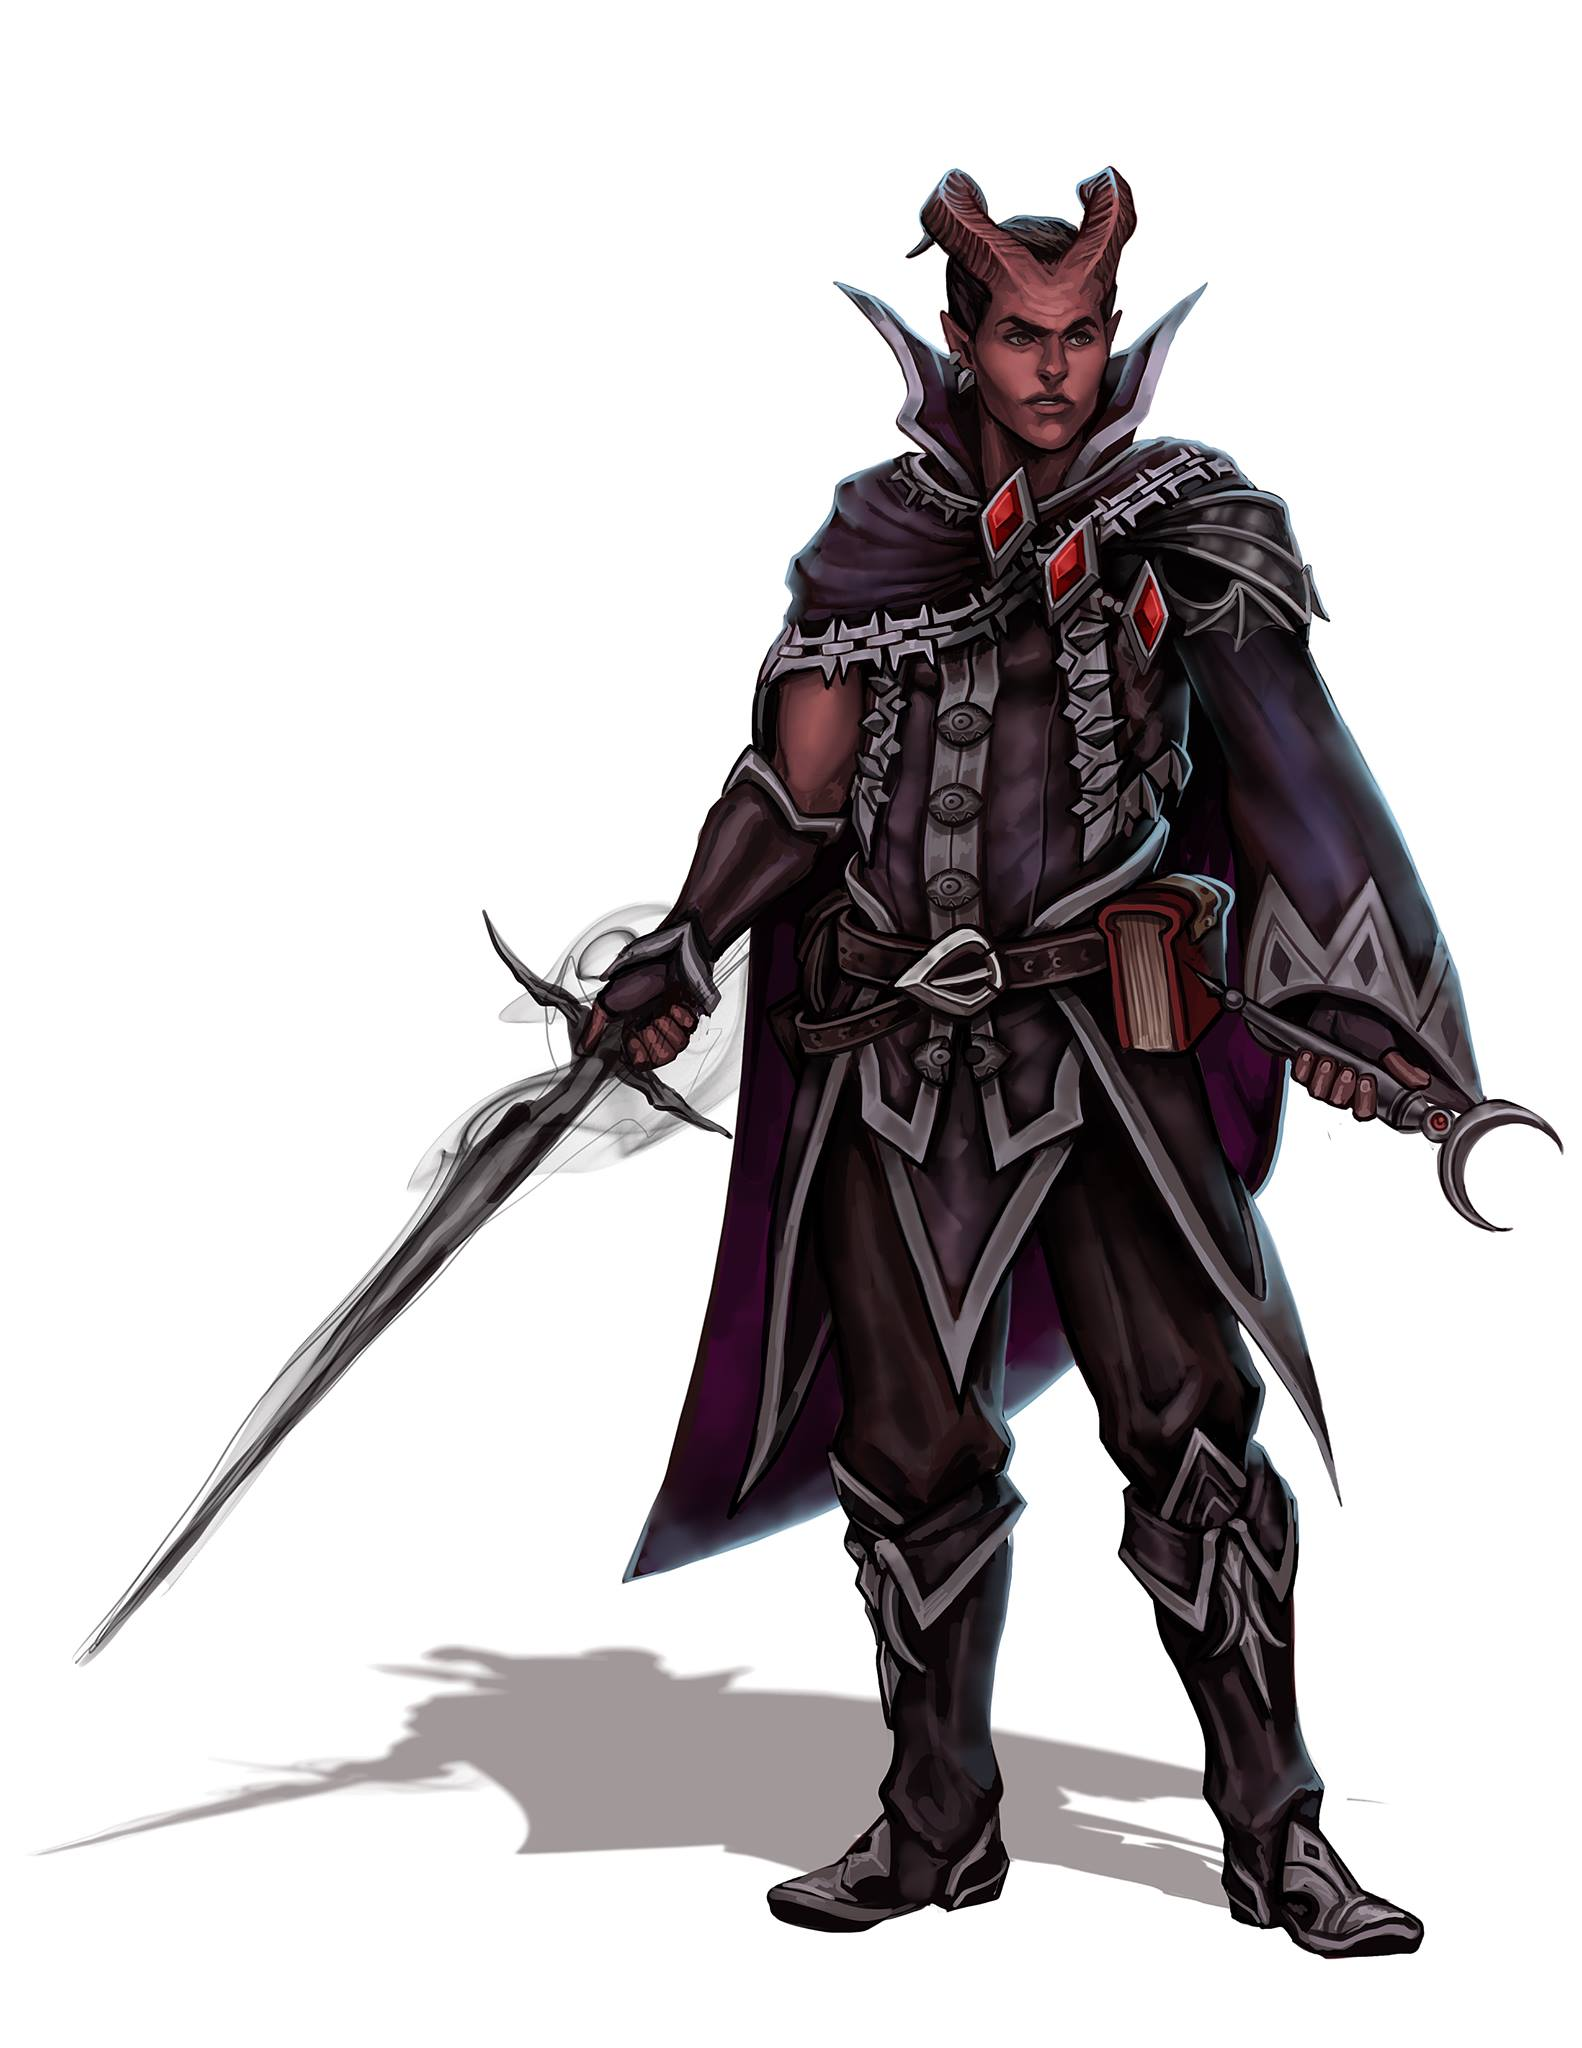 The Workshop Serenn Young Paladin Of Vengeance D D 5e D20 Radio As long as you remain cursed, you are unwilling to part with the sword, keeping it on your person at all times. d20 radio